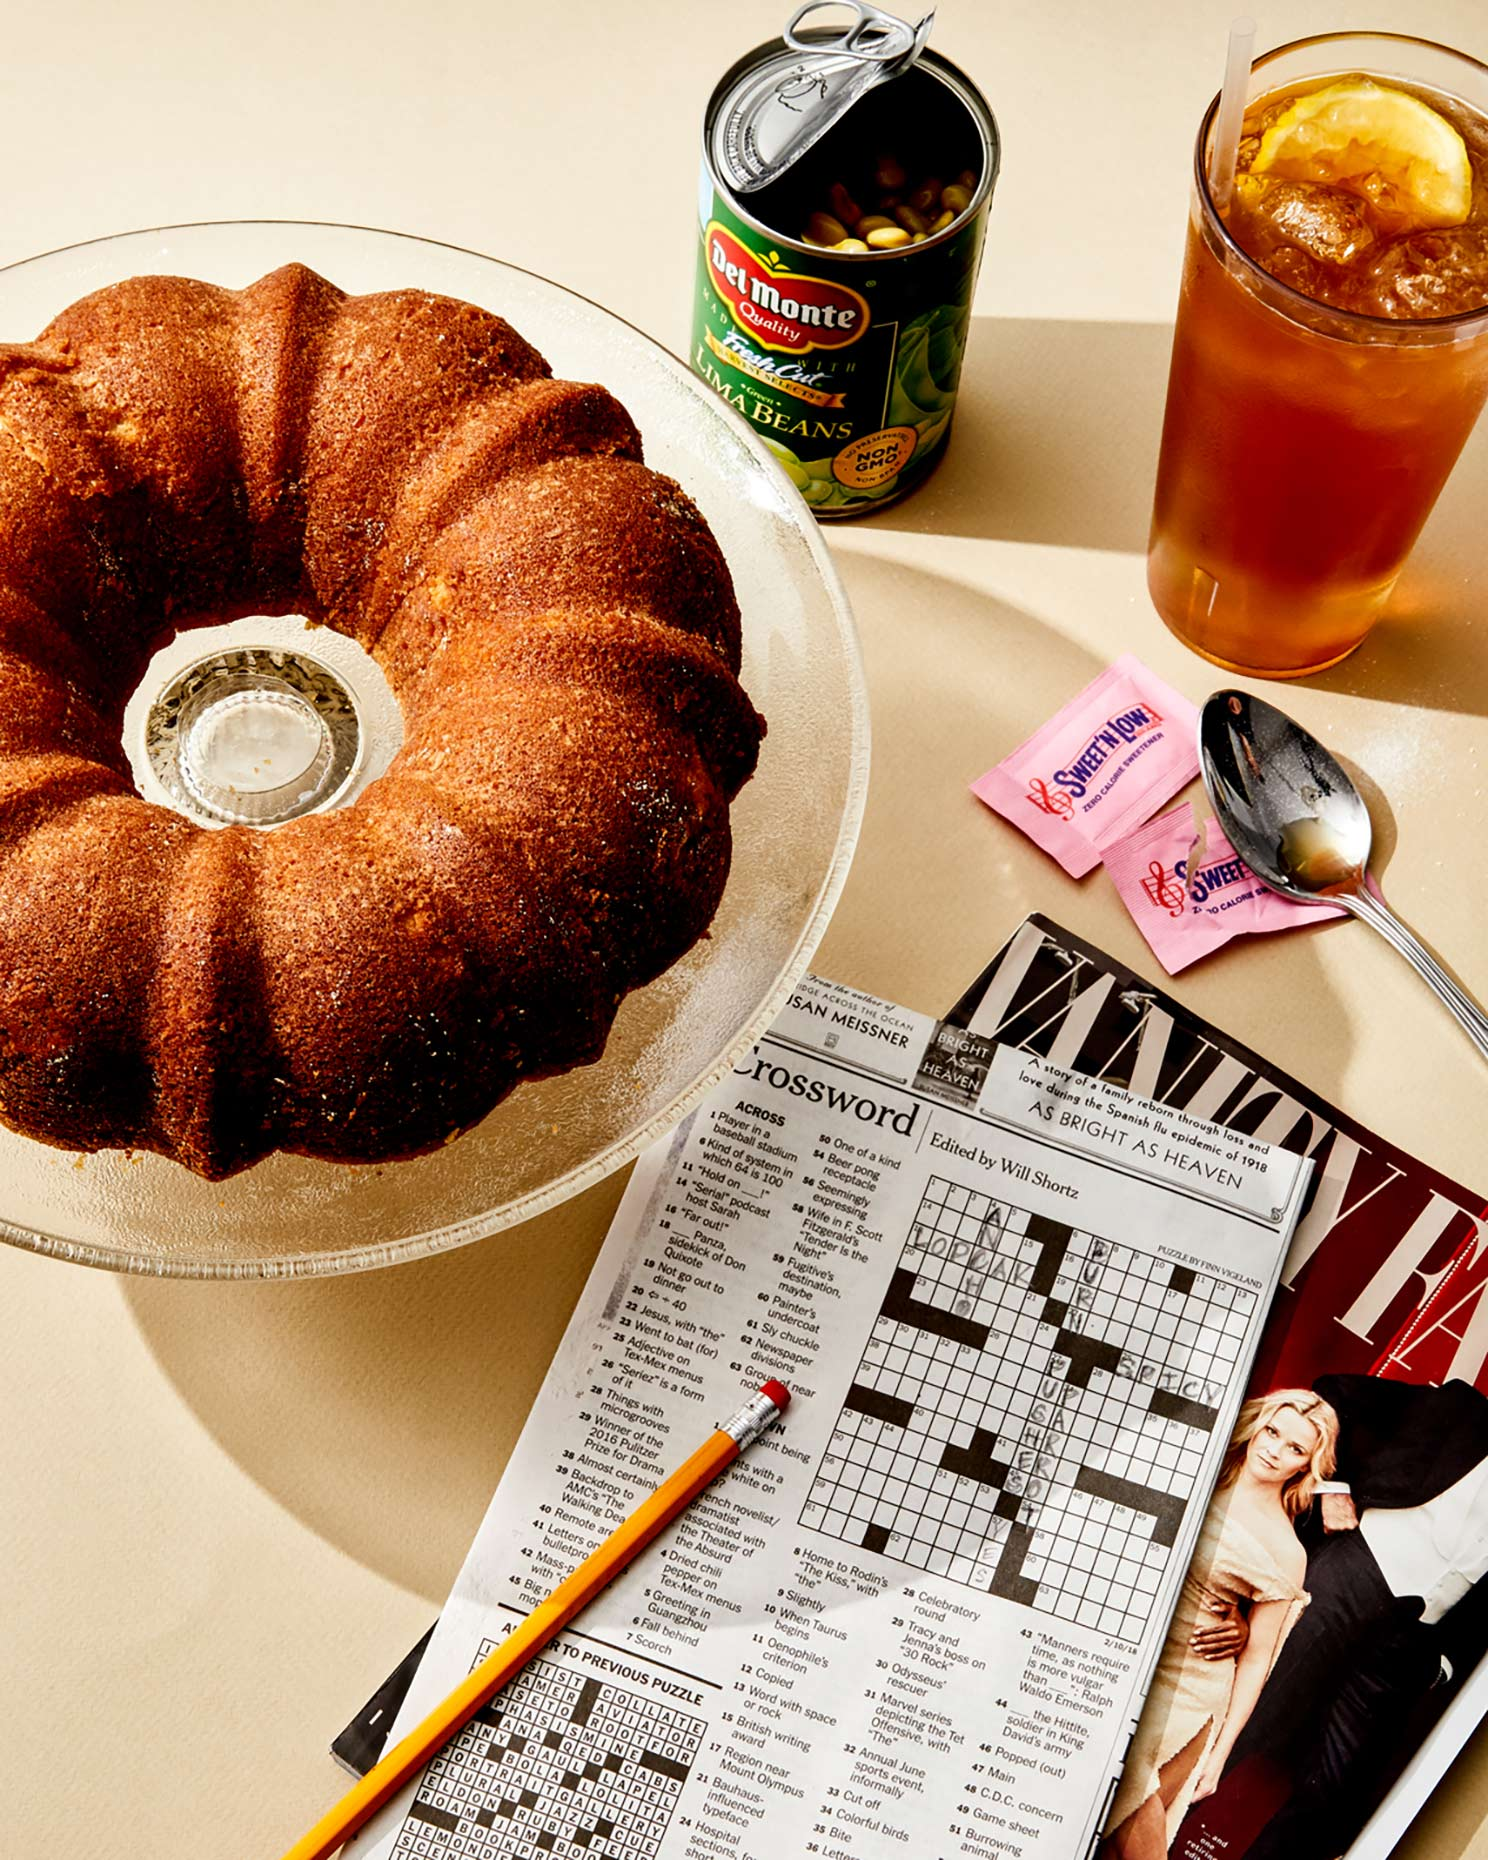 Bundt-Cake-Crossword-Puzzle-Tea-Food-Photographer-Photography-NYC-New-York-Rick-Holbrook